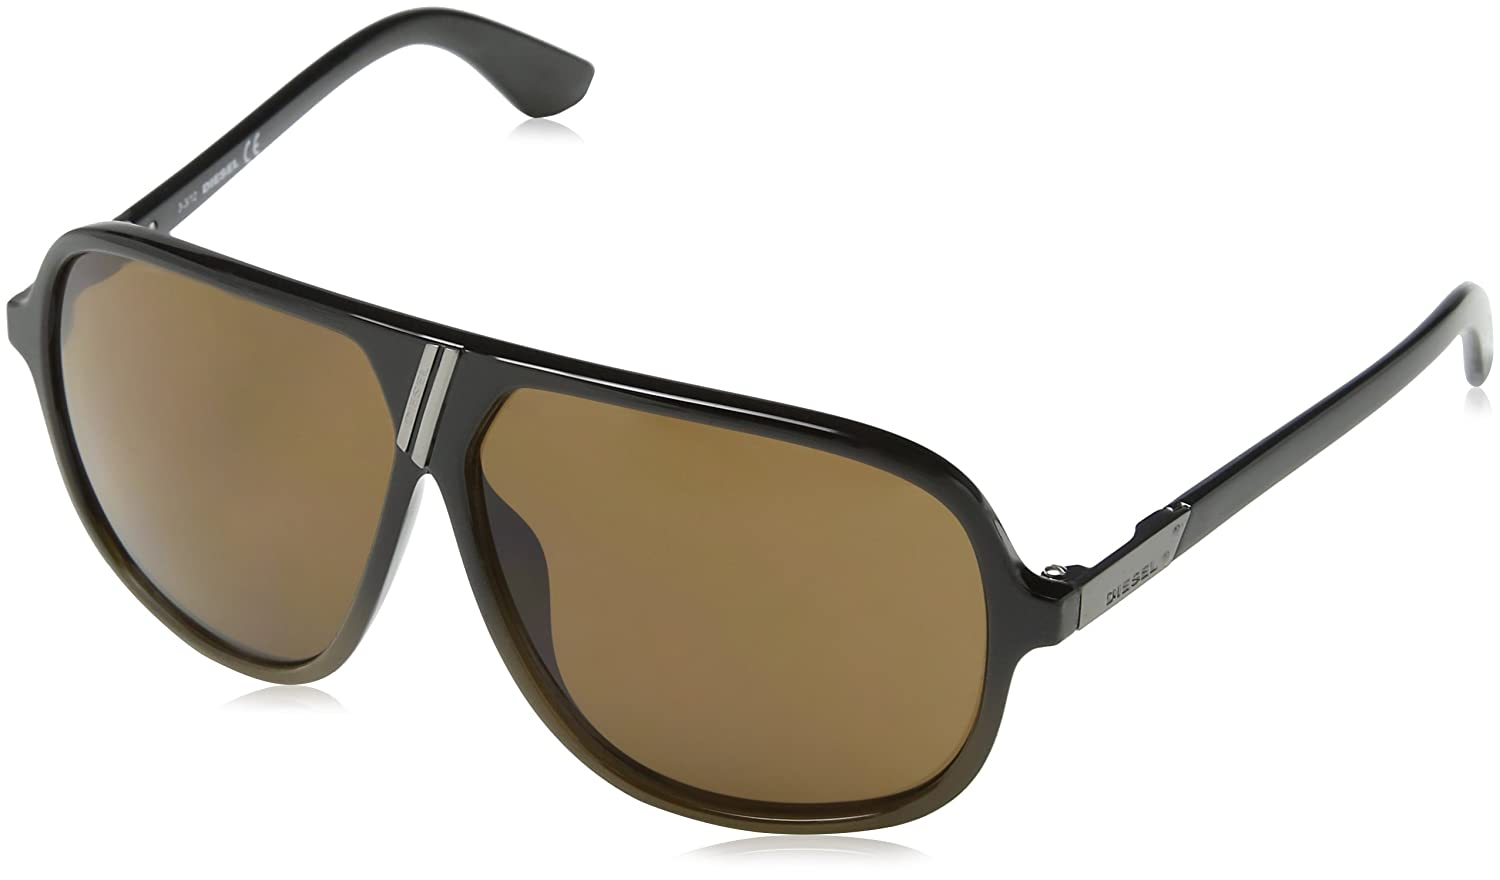 Diesel - Gafas de sol Aviador DL0043, Black & Brown Frame/Brown Lens